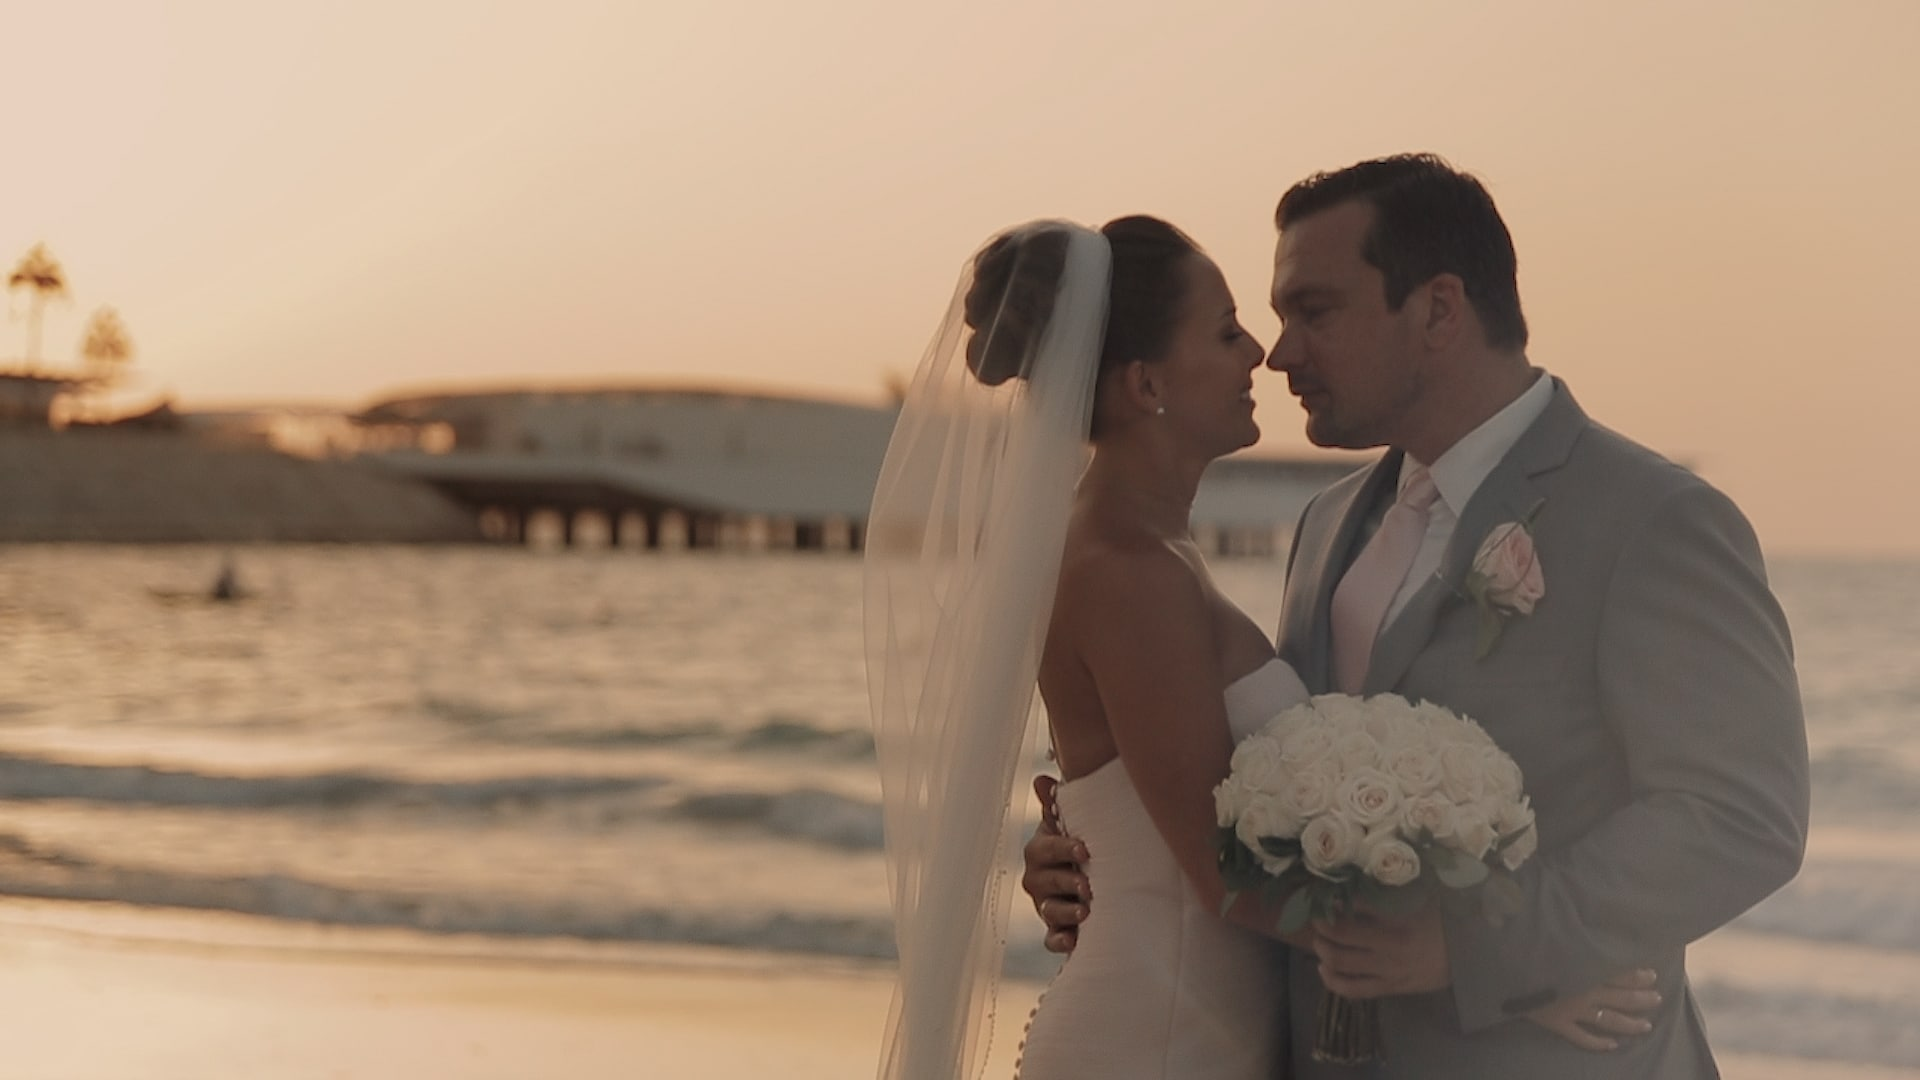 Morning Jacket Films -Wedding Videography Jumeirah Beach Hotel Dubai